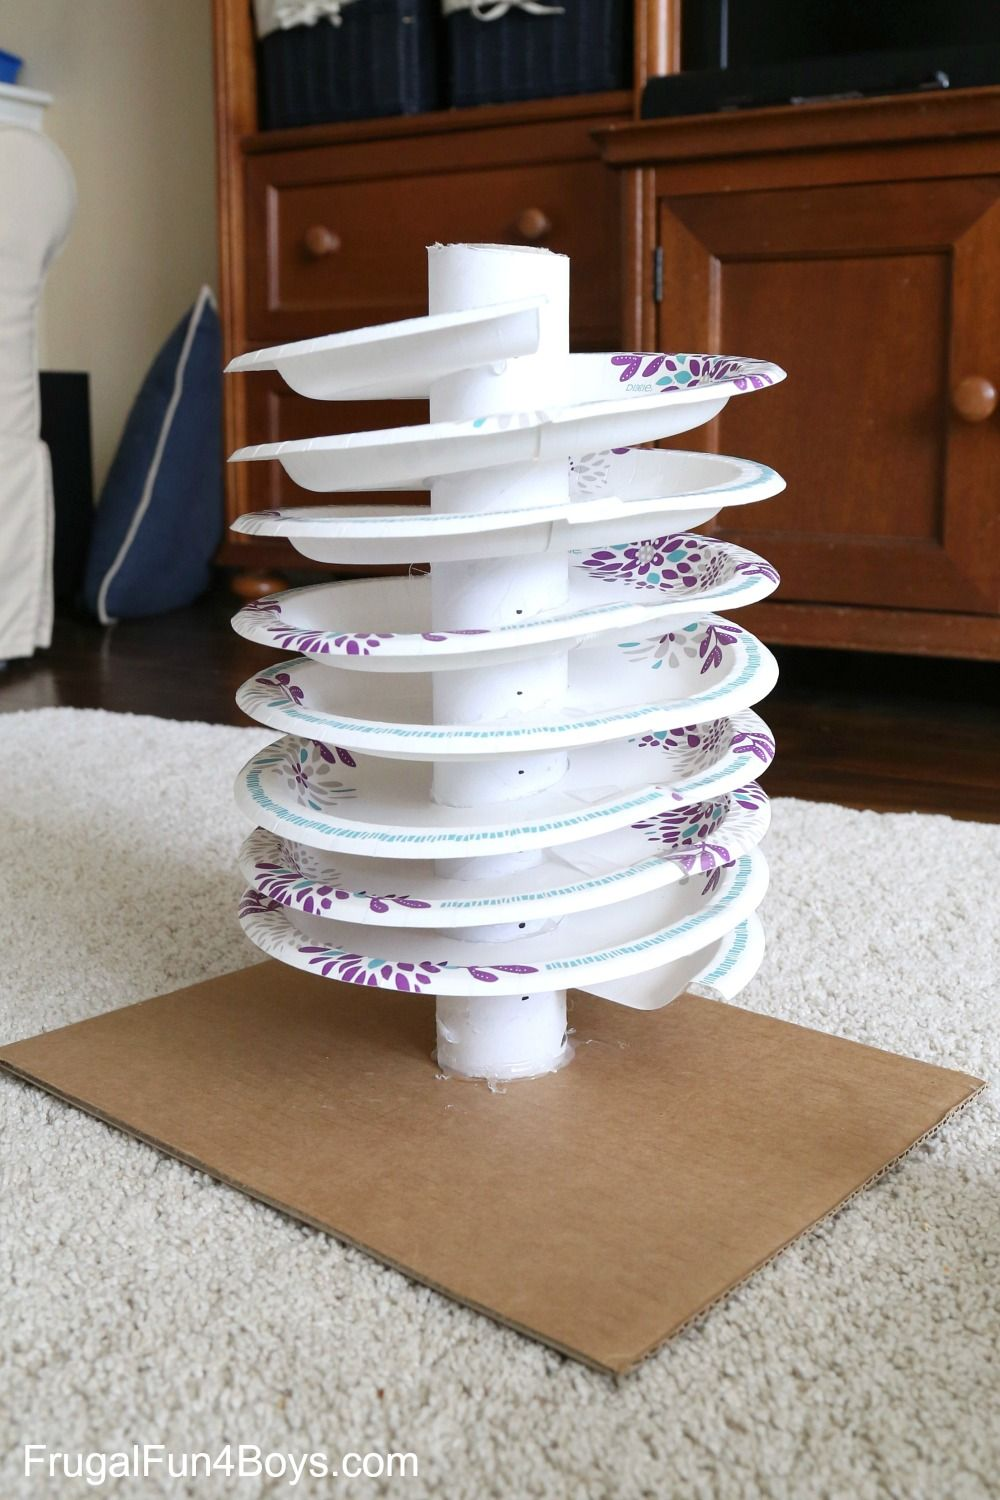 How To Build A Paper Plate Spiral Marble Track Frugal Fun For Boys And Girls Marble Tracks Paper Plates Homemade Toys